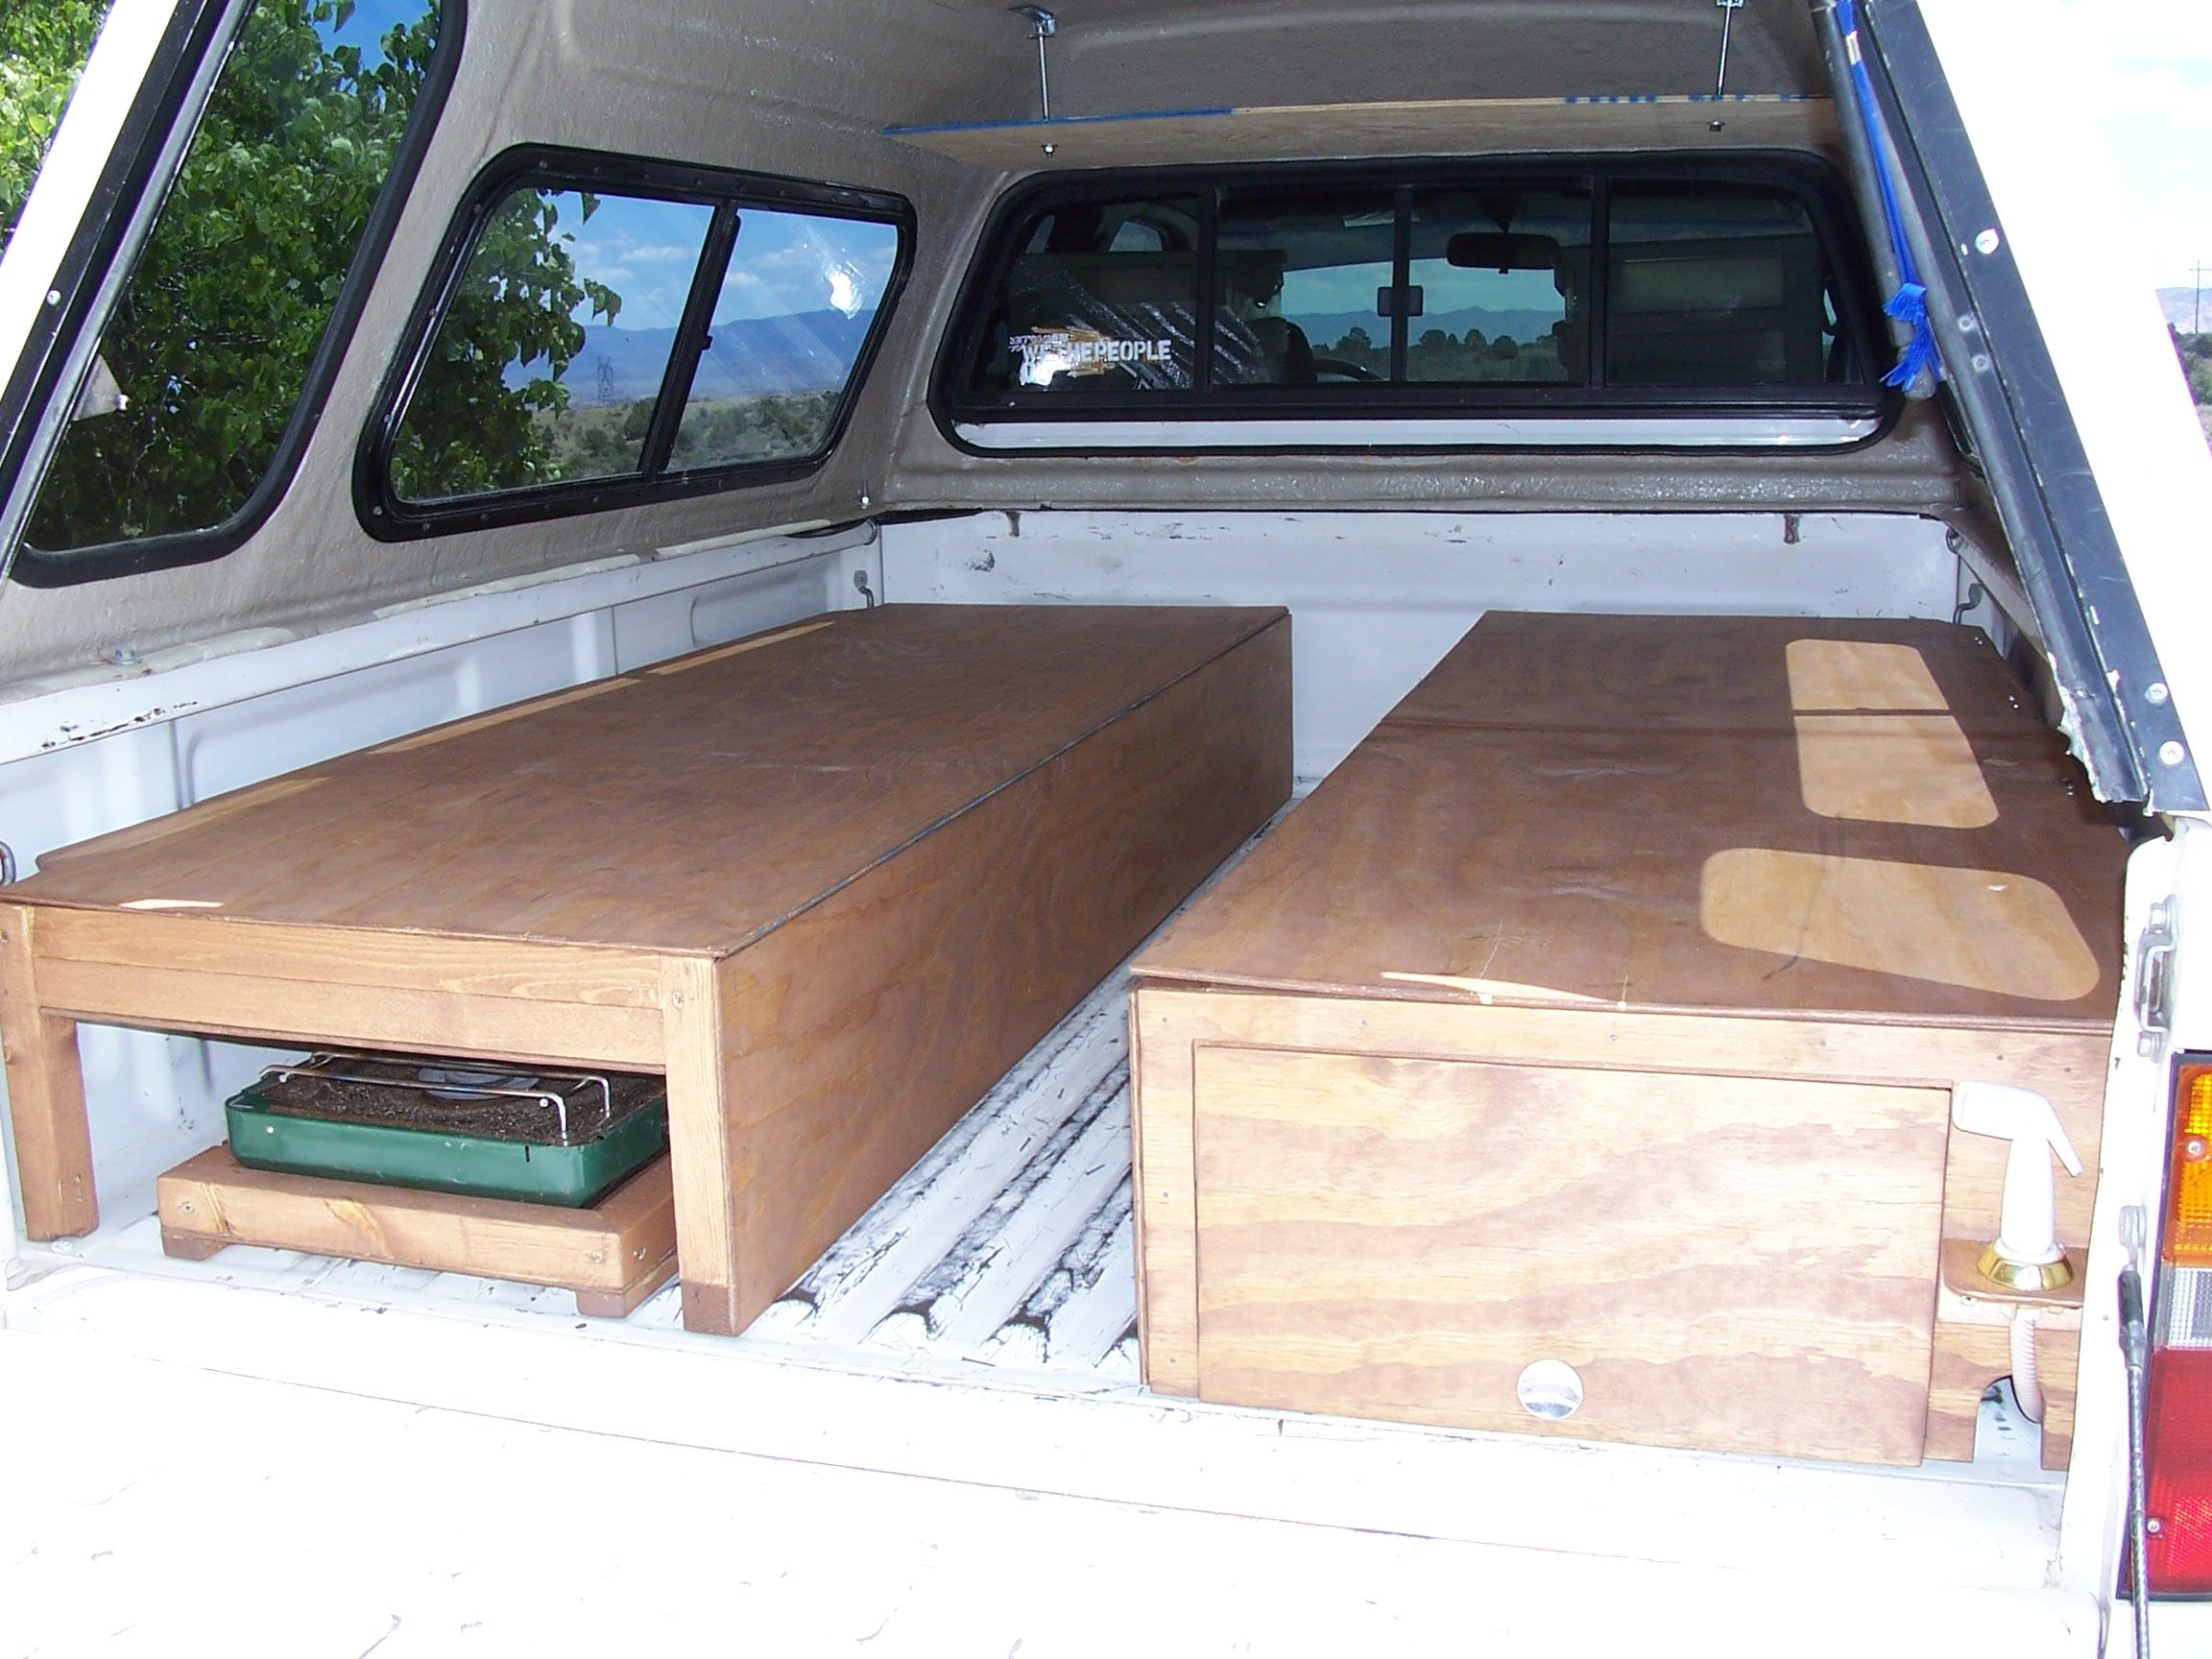 luxury truck bed camper build good locking mechanism idea camping pinterest truck bed. Black Bedroom Furniture Sets. Home Design Ideas